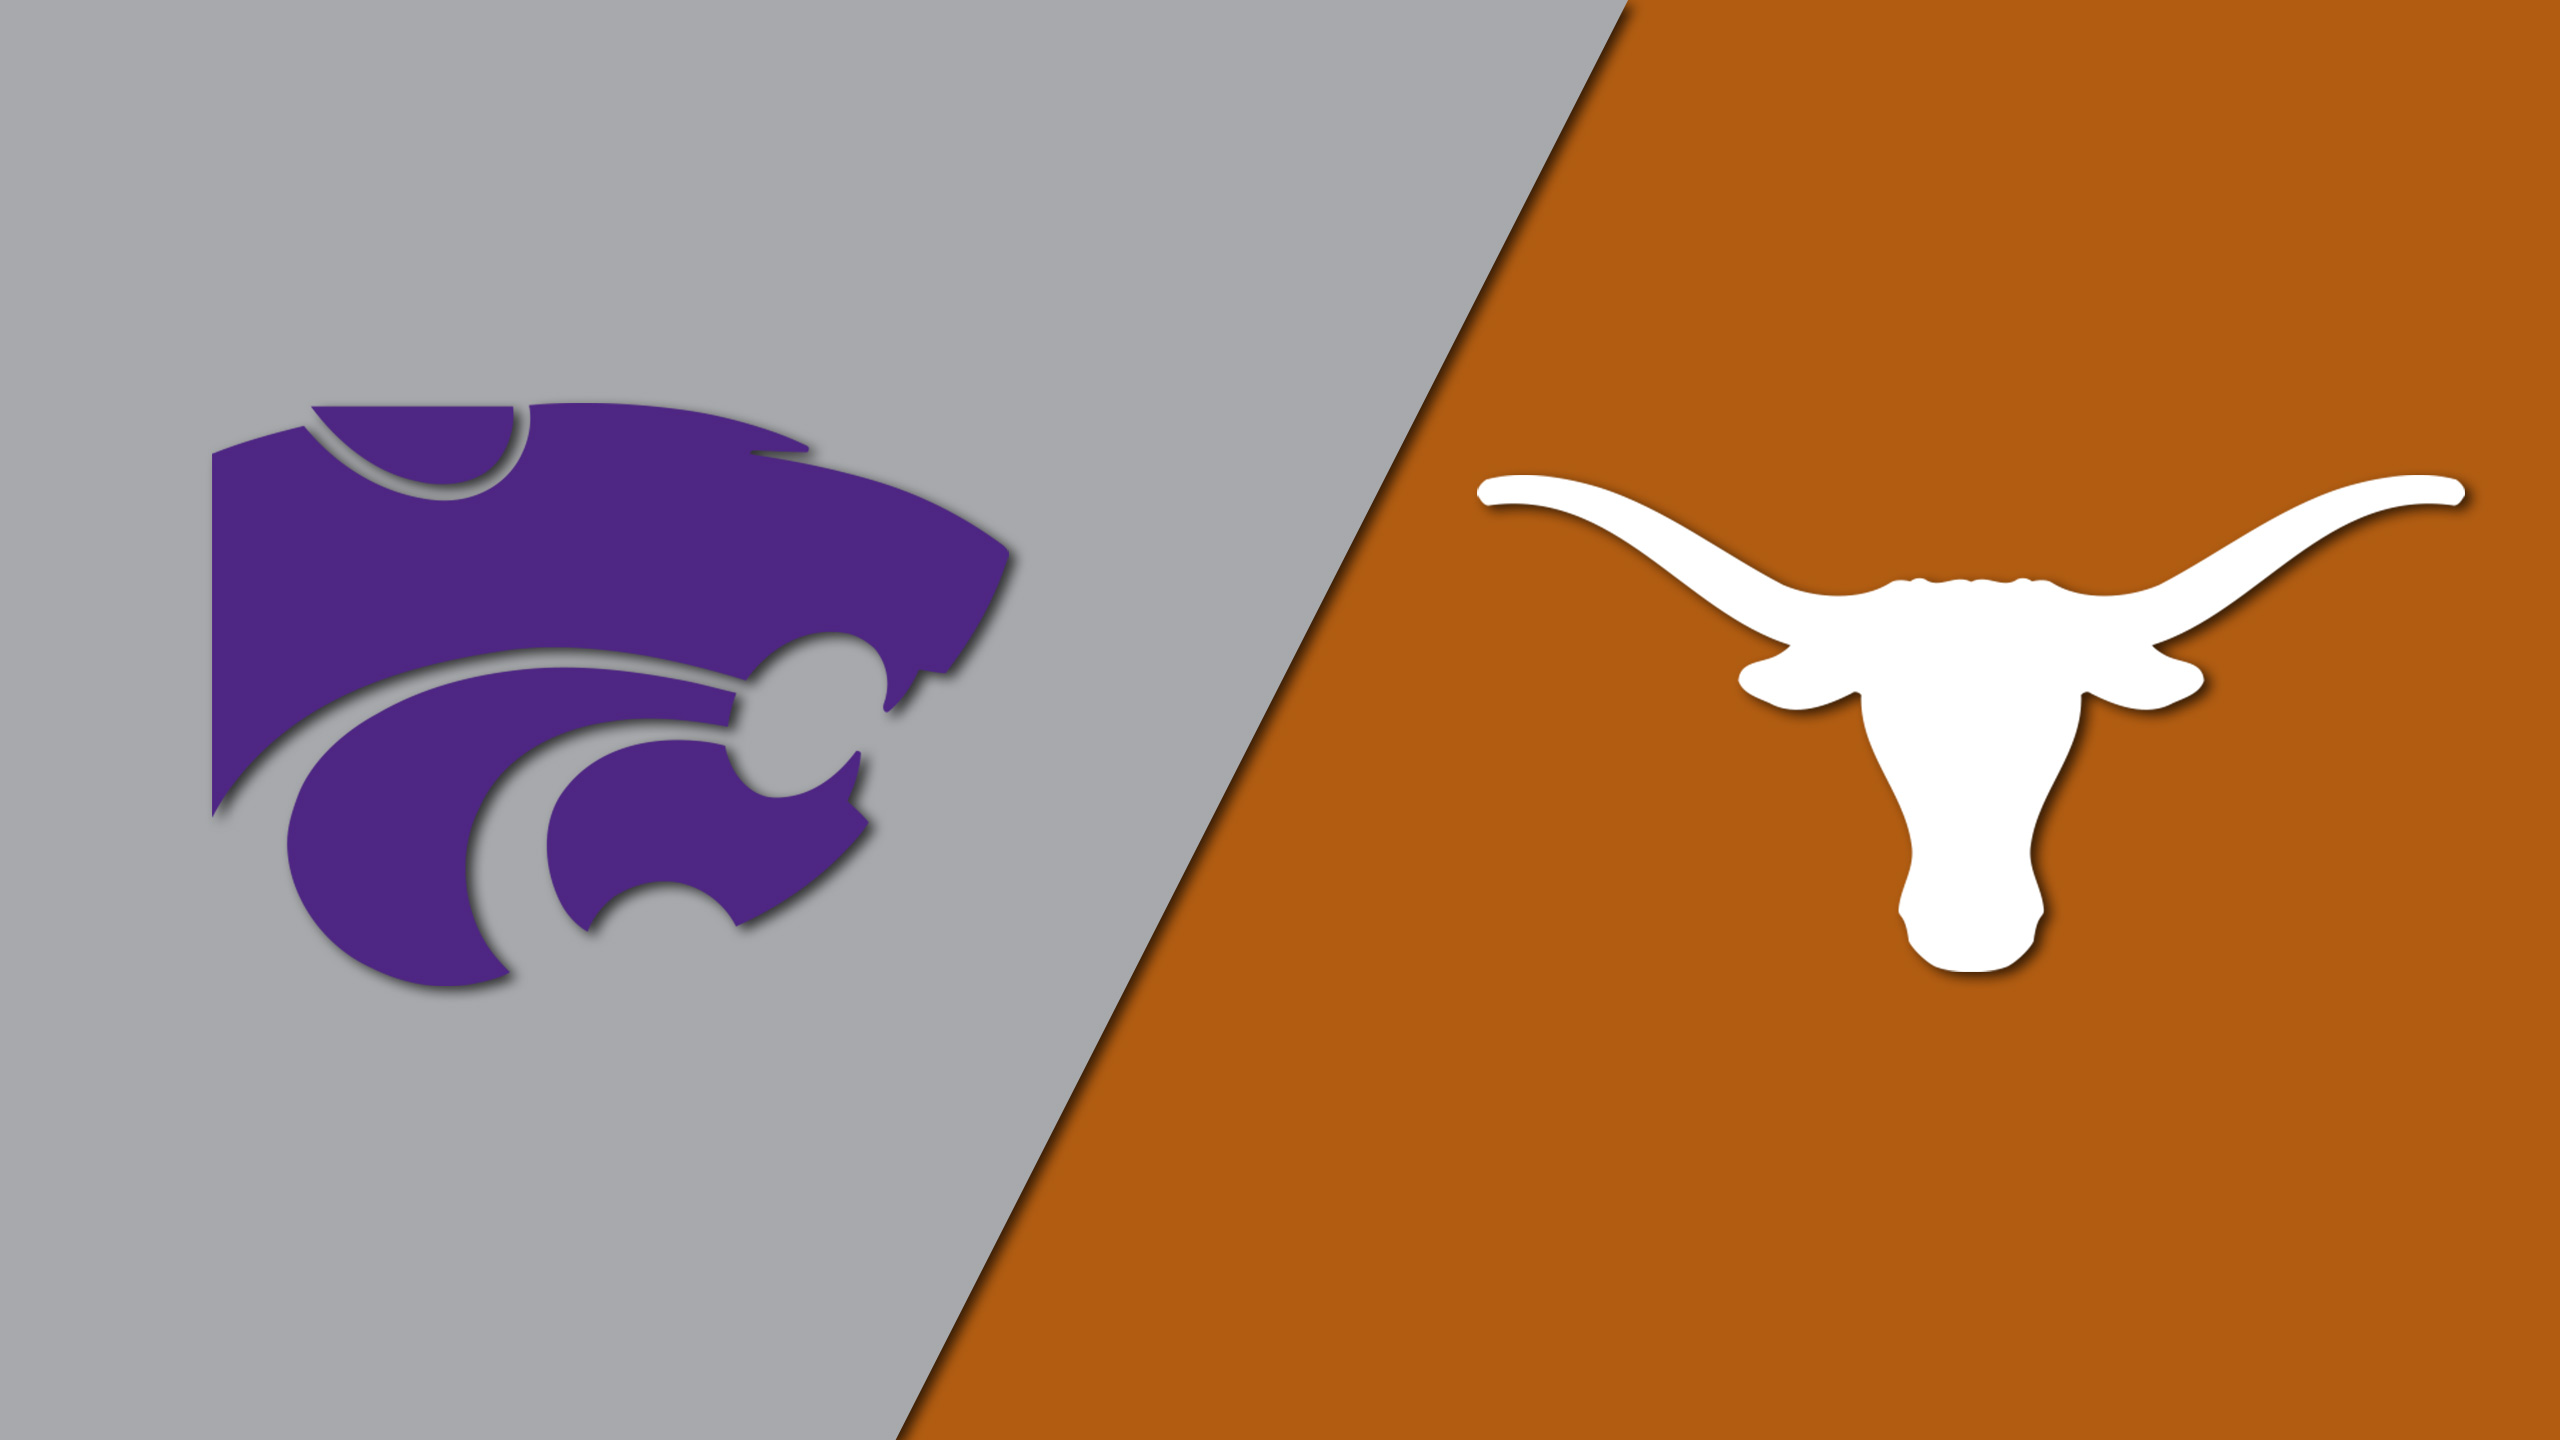 Kansas State vs. Texas - 9/21/2013 (re-air)